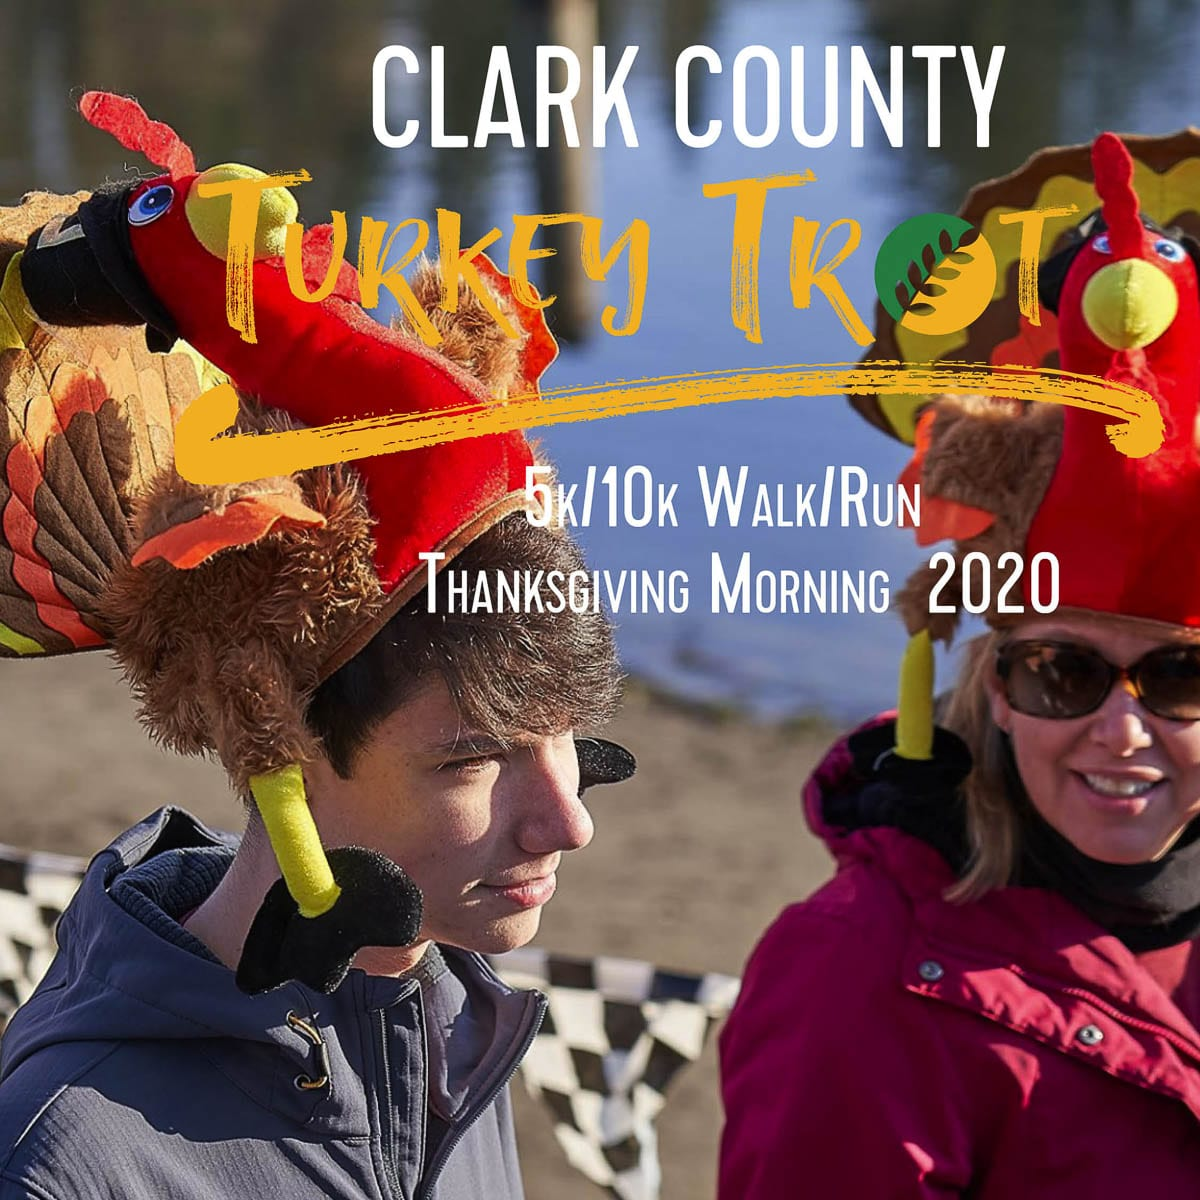 """The 2020 Turkey Trot on Thanksgiving morning, will be spread out at five different locations around Clark County, due to the COVID-19 pandemic. This is an attempt to spread people out and provide more """"local"""" sites for people to participate. Photo courtesy of Clark County Food Bank"""